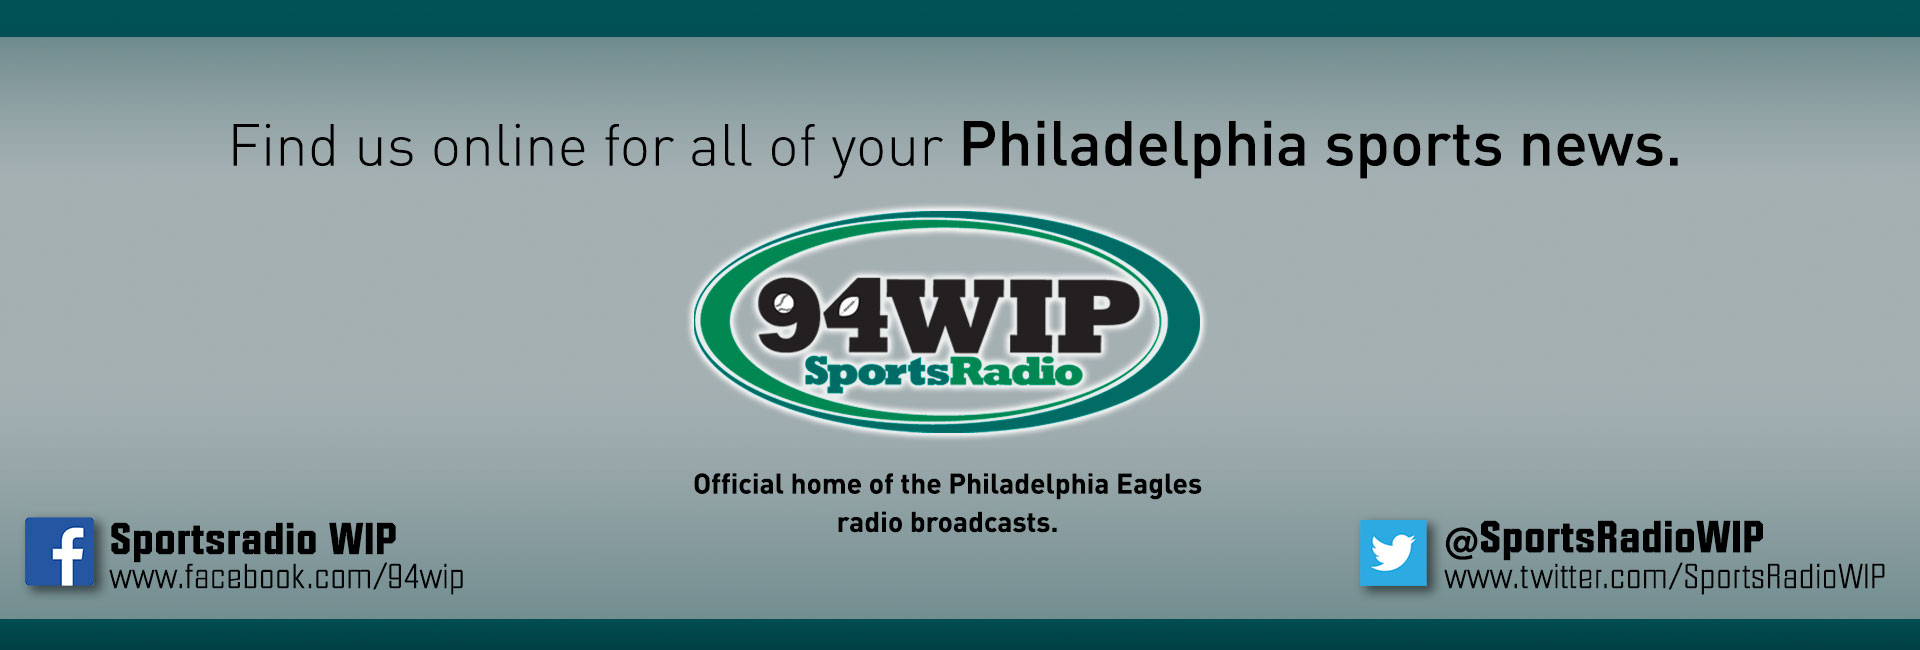 Get Connected to SportsRadio 94WIP